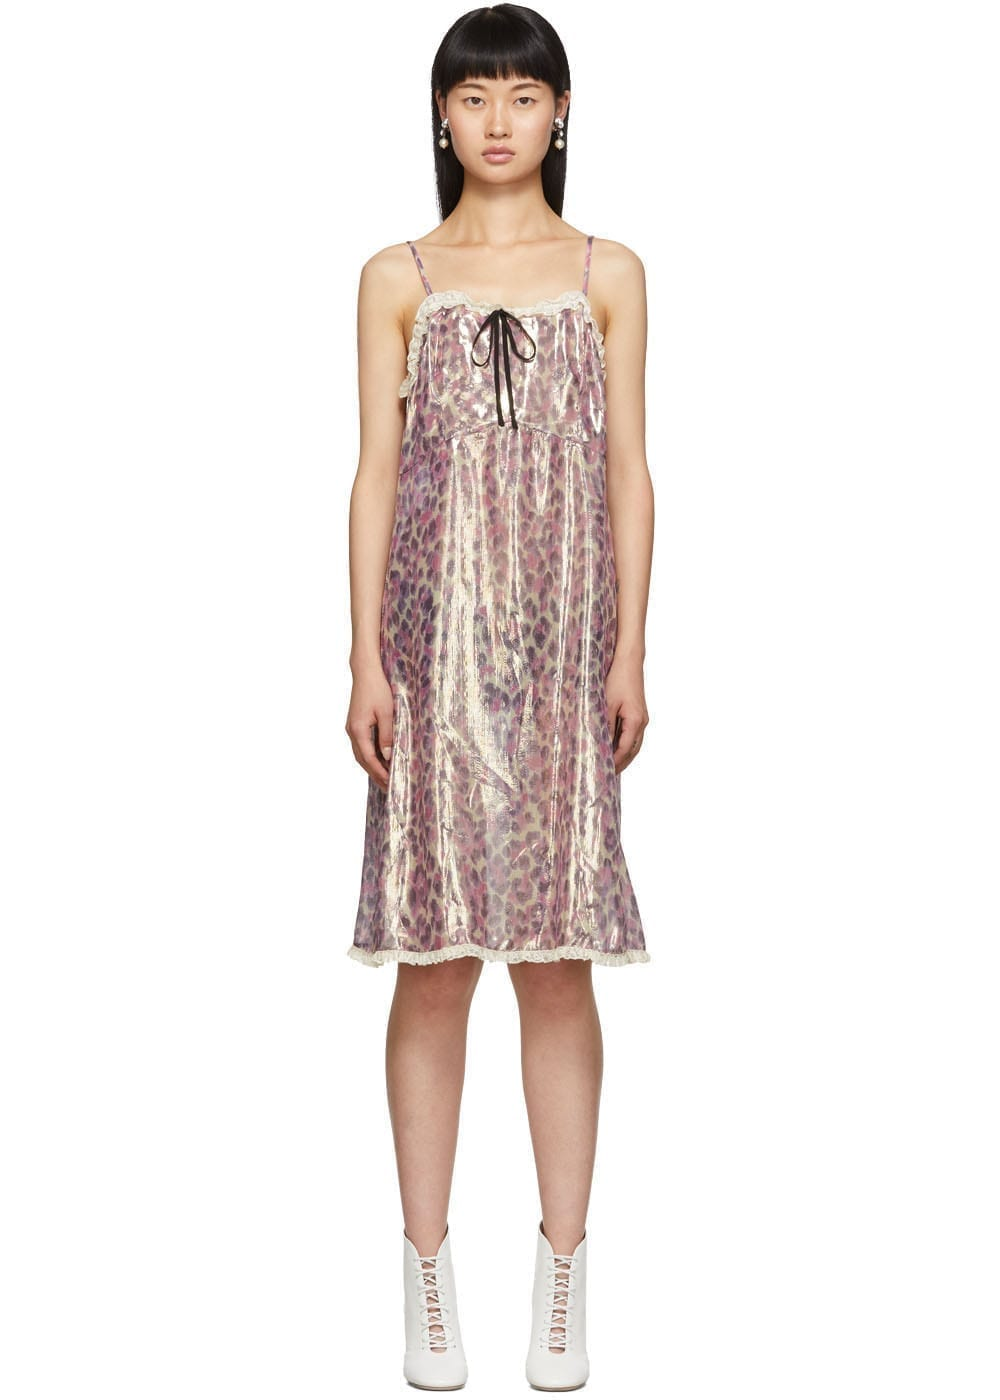 MIU MIU Pink Silk Chiffon Print Dress